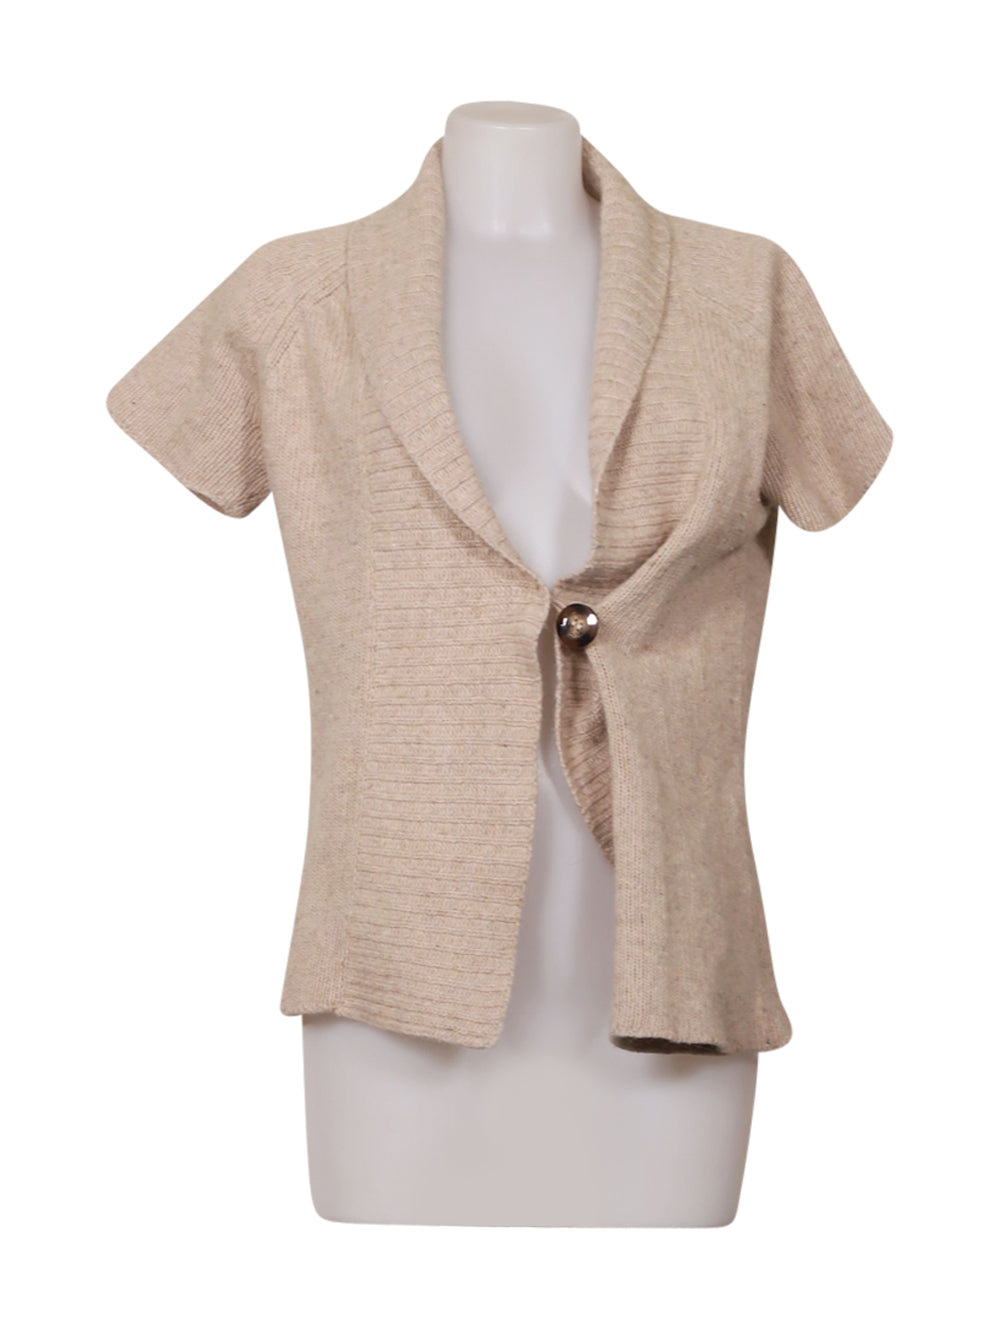 Front photo of Preloved Intimissimi Beige Woman's bolero - size 12/L